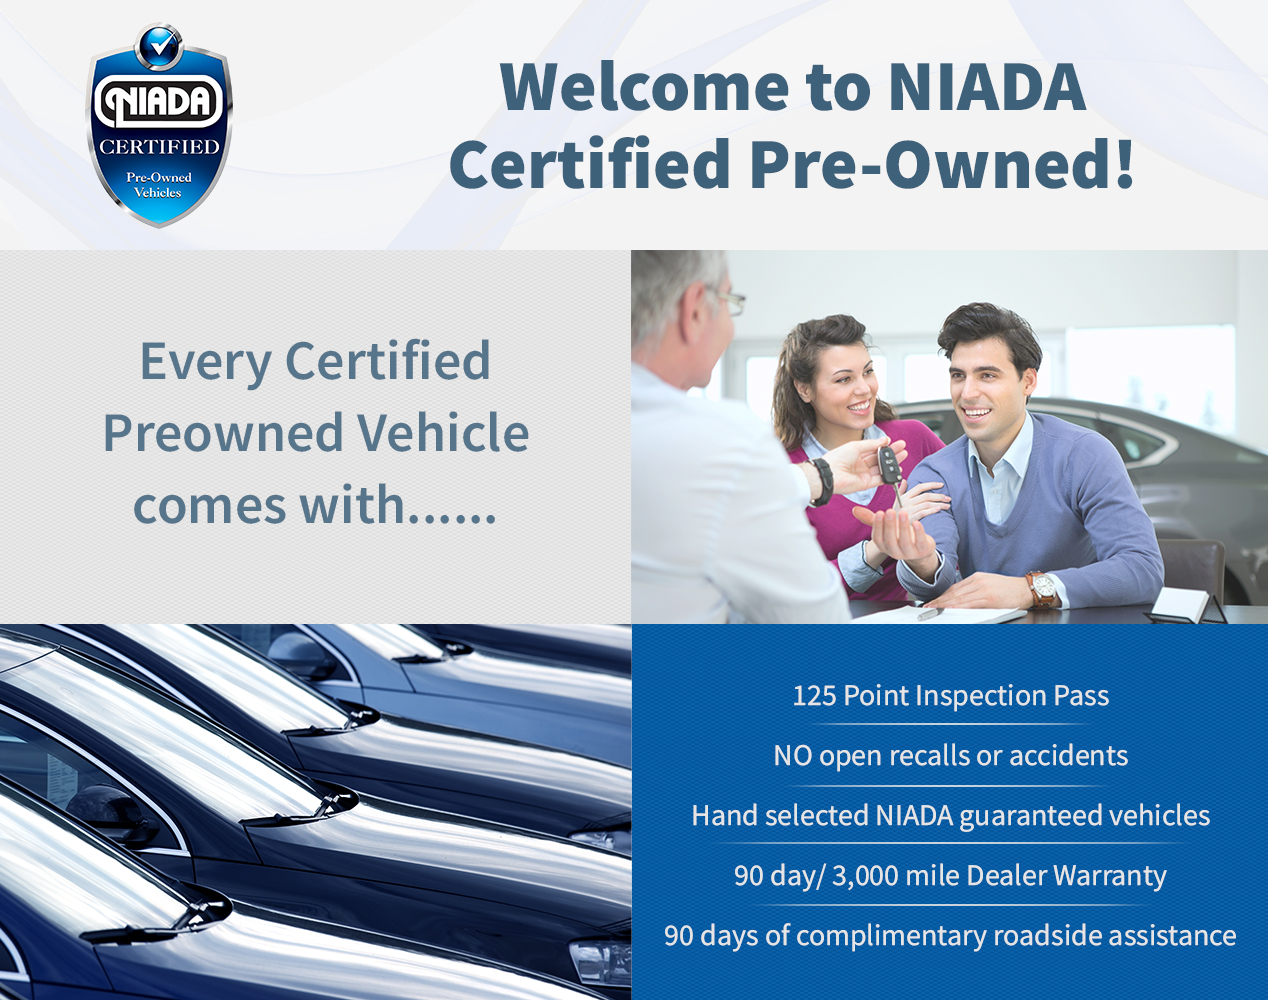 NIADA_Certified_Pre-Owned_LP